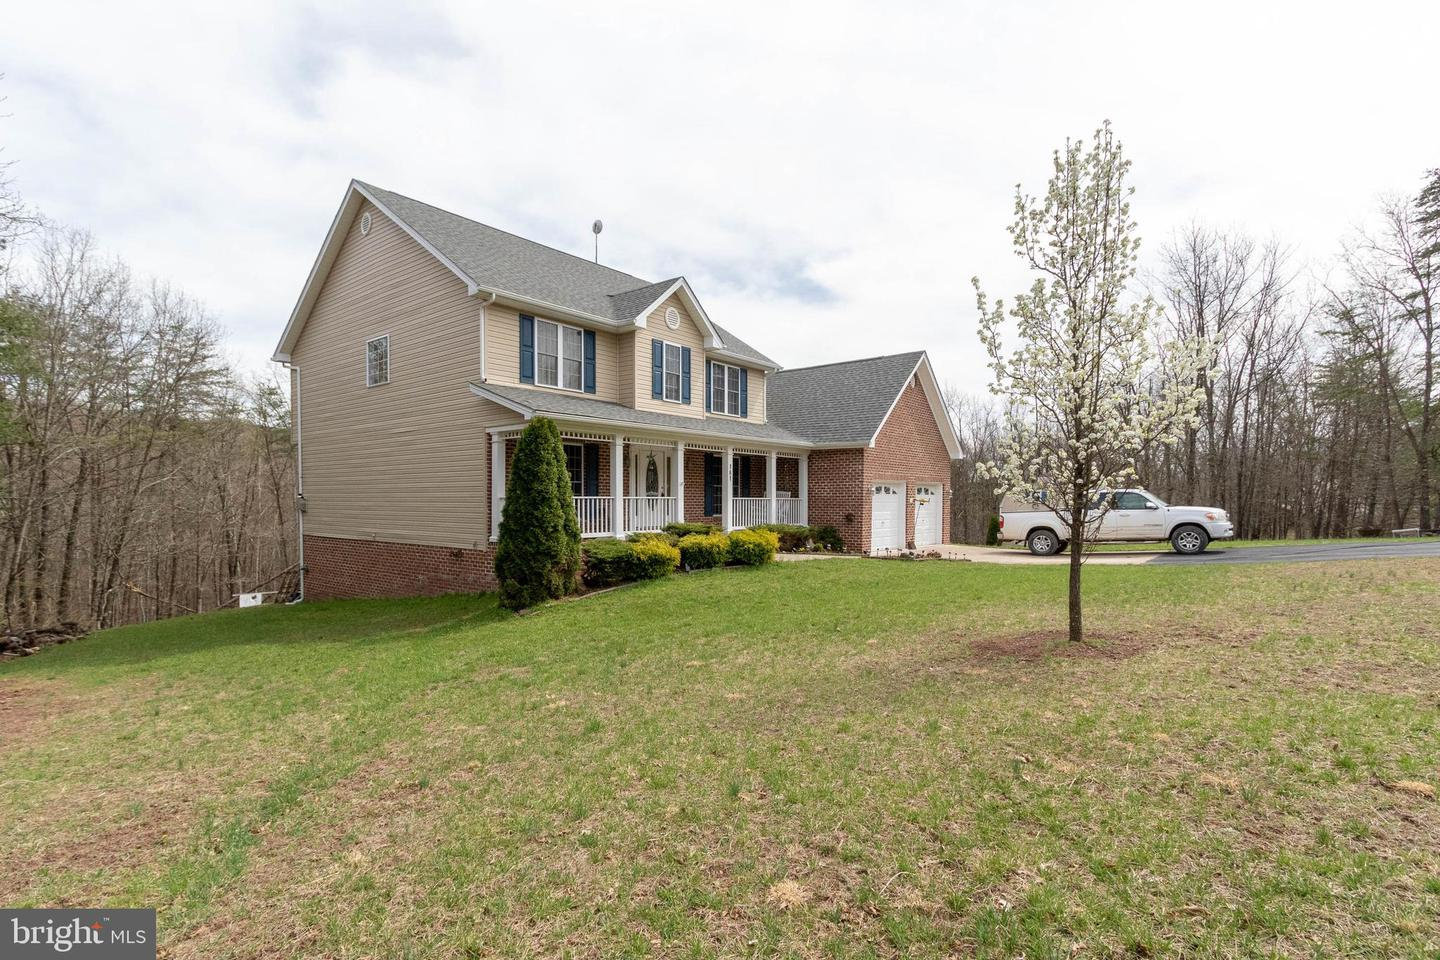 Single Family for Sale at 181 Tralee Dr 181 Tralee Dr Cross Junction, Virginia 22625 United States